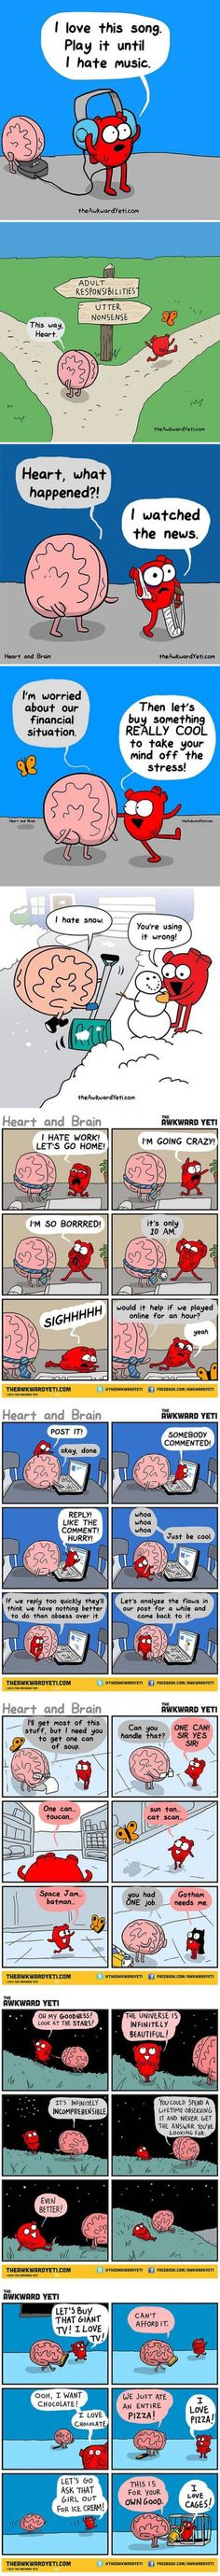 Heart and Brain - 9GAG